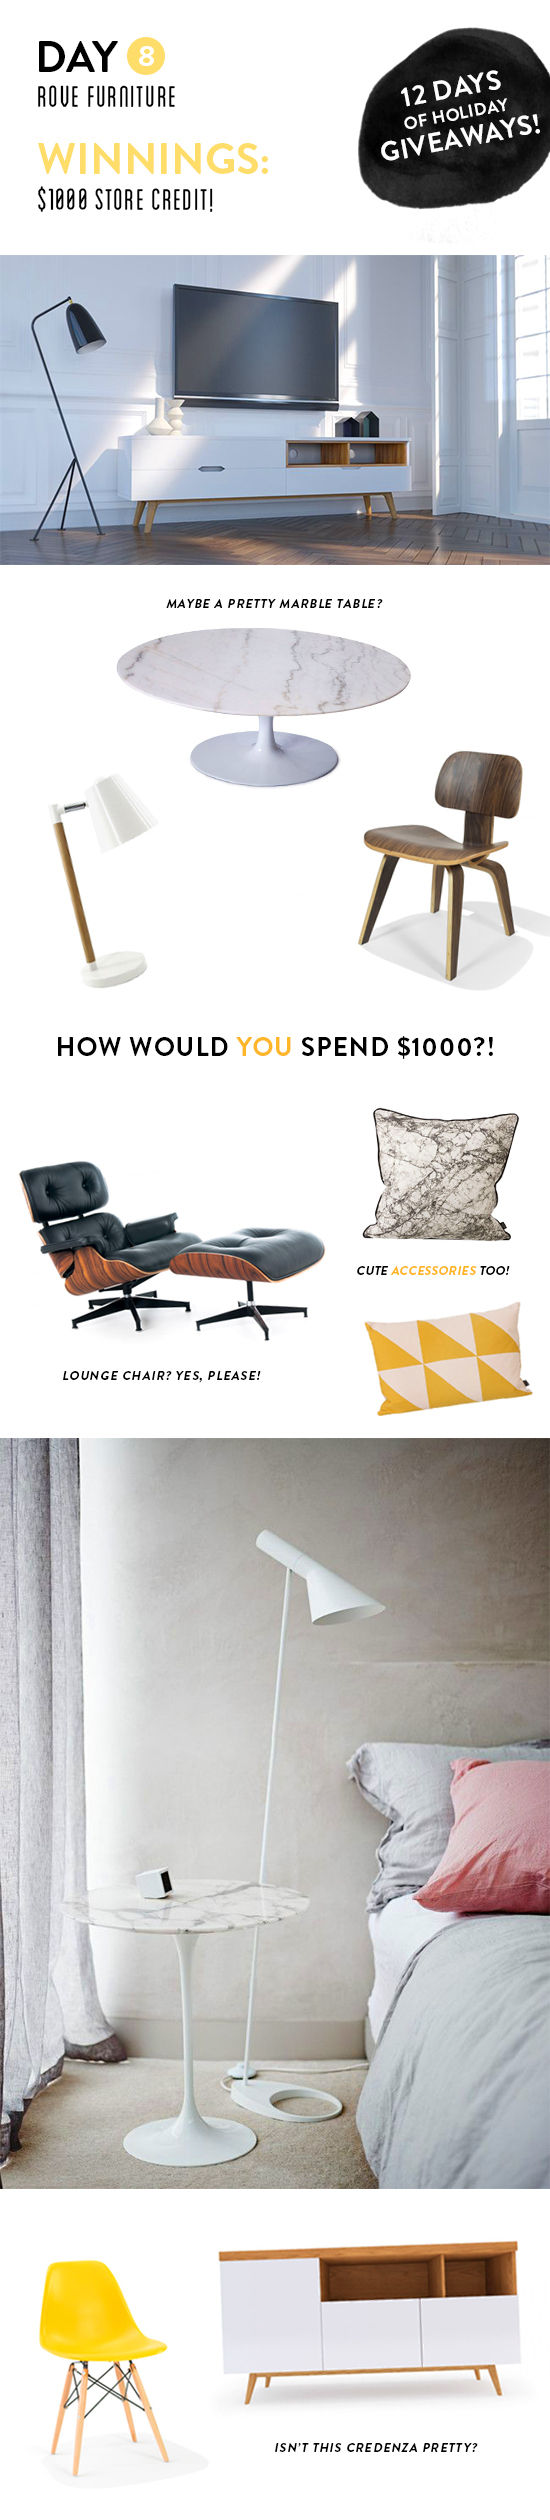 $1000 furniture giveaway! | designlovefest